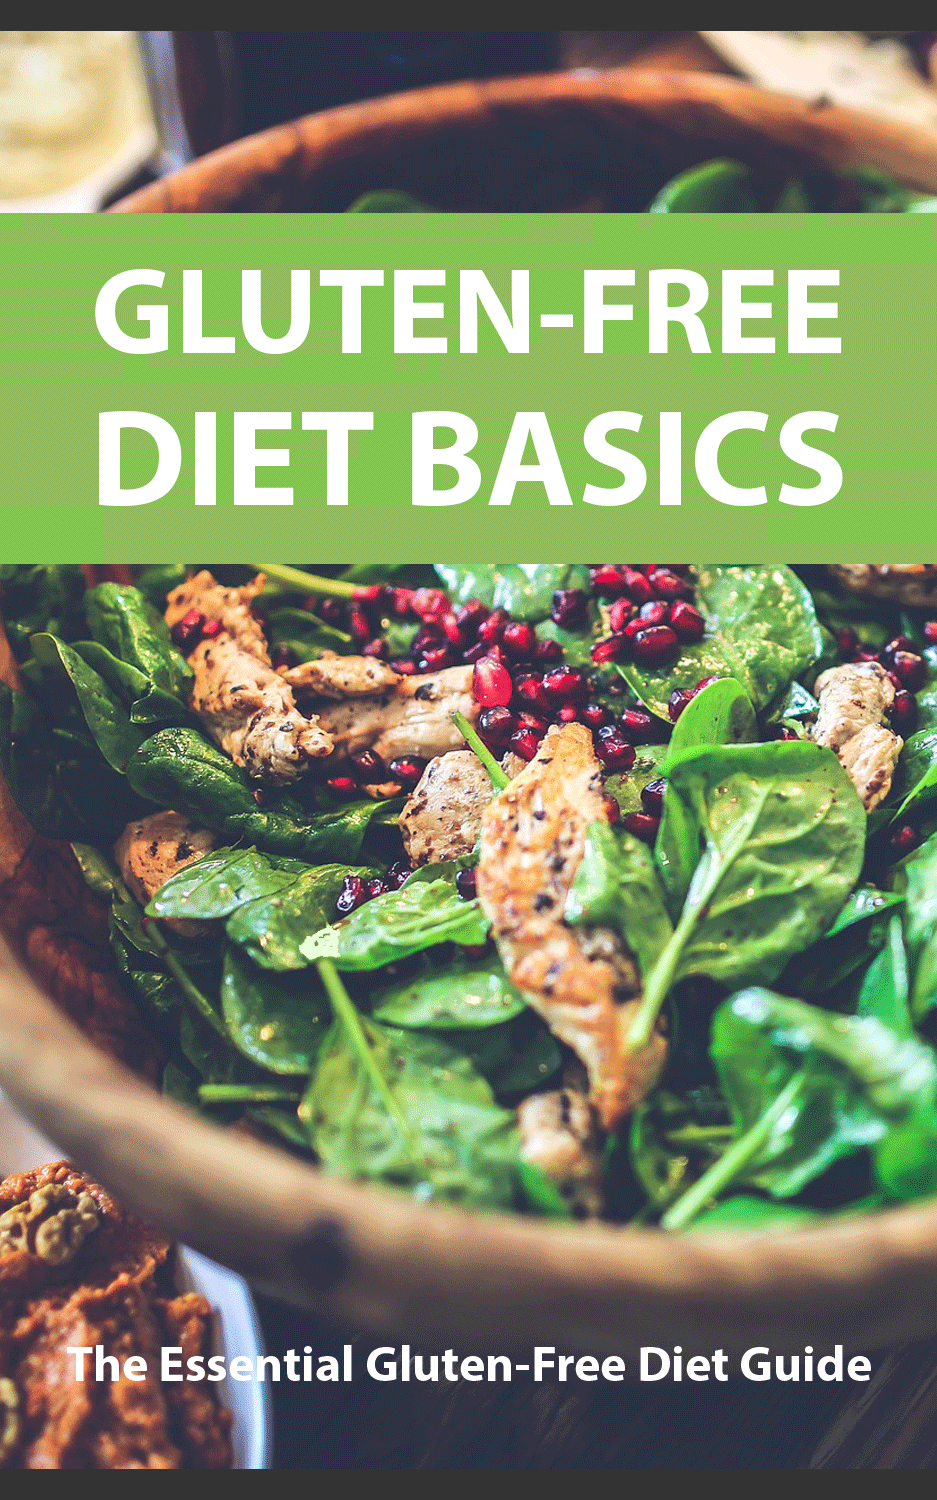 Gluten-Free Diet Basics (The Essential Gluten-Free Diet Guide) Ebook's Ebook Image